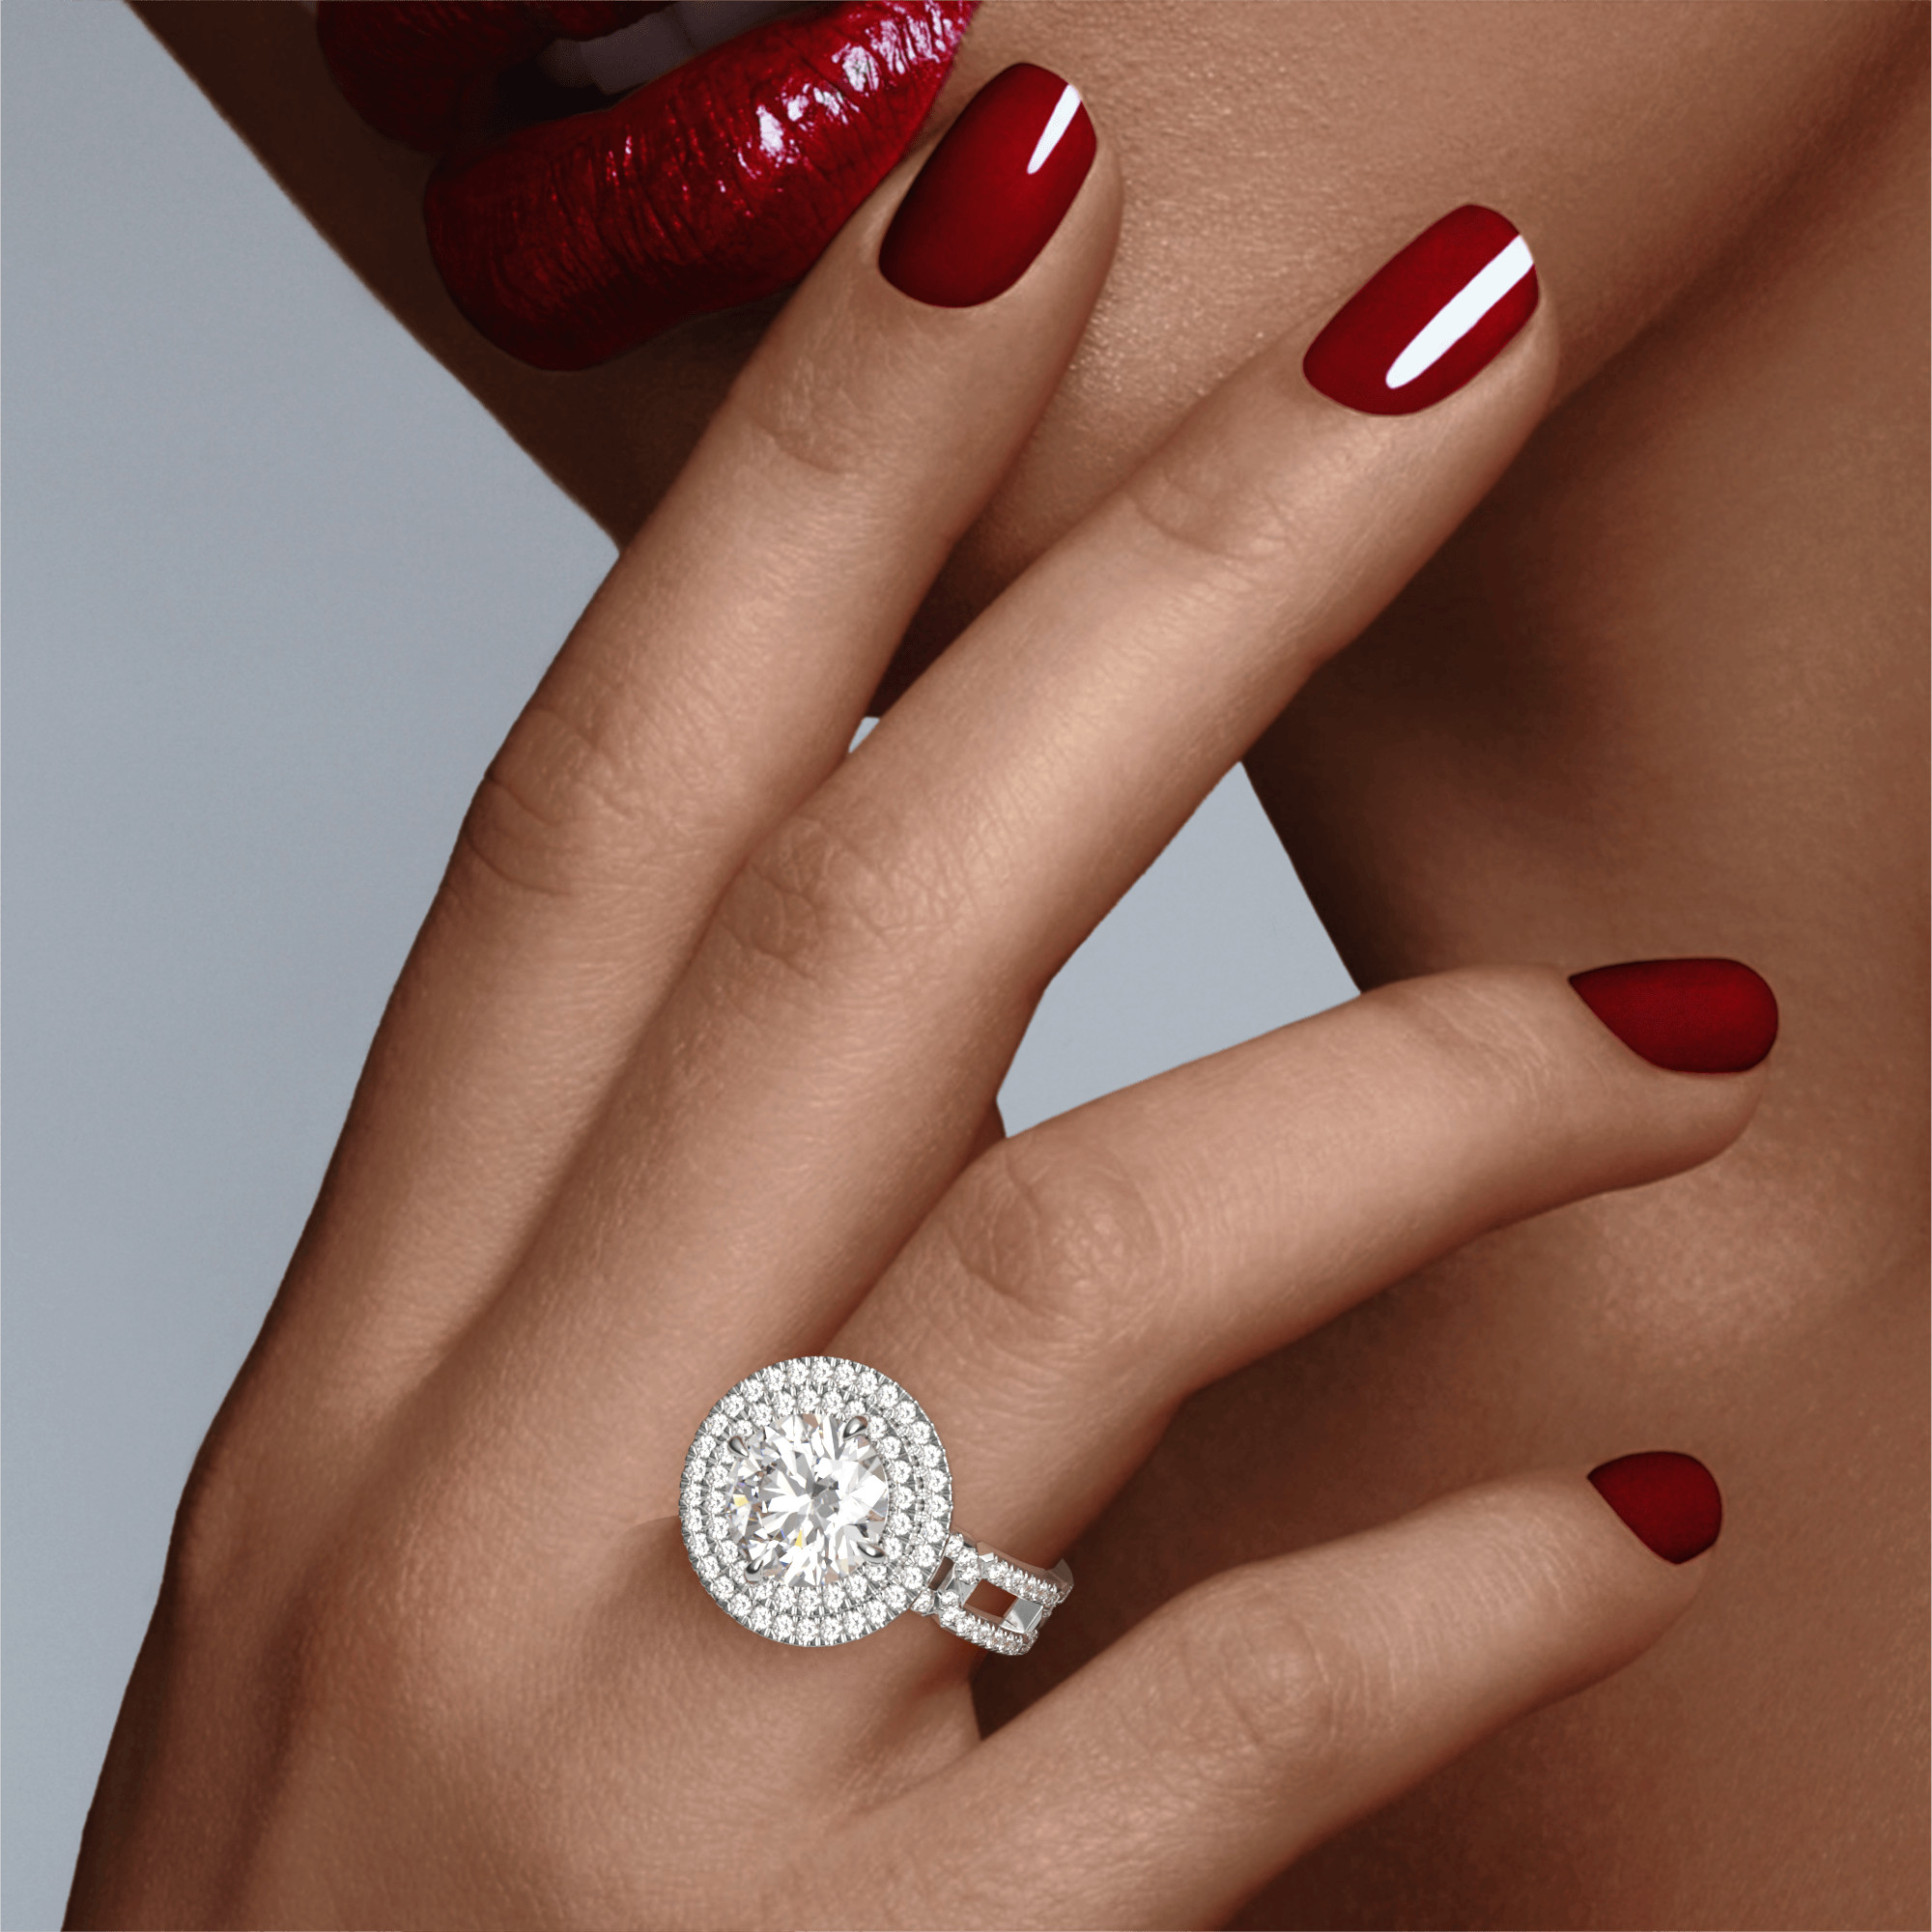 ROUND CUT, DOUBLE HALO SETTING, 8 PAVE LINKS, PLATINUM